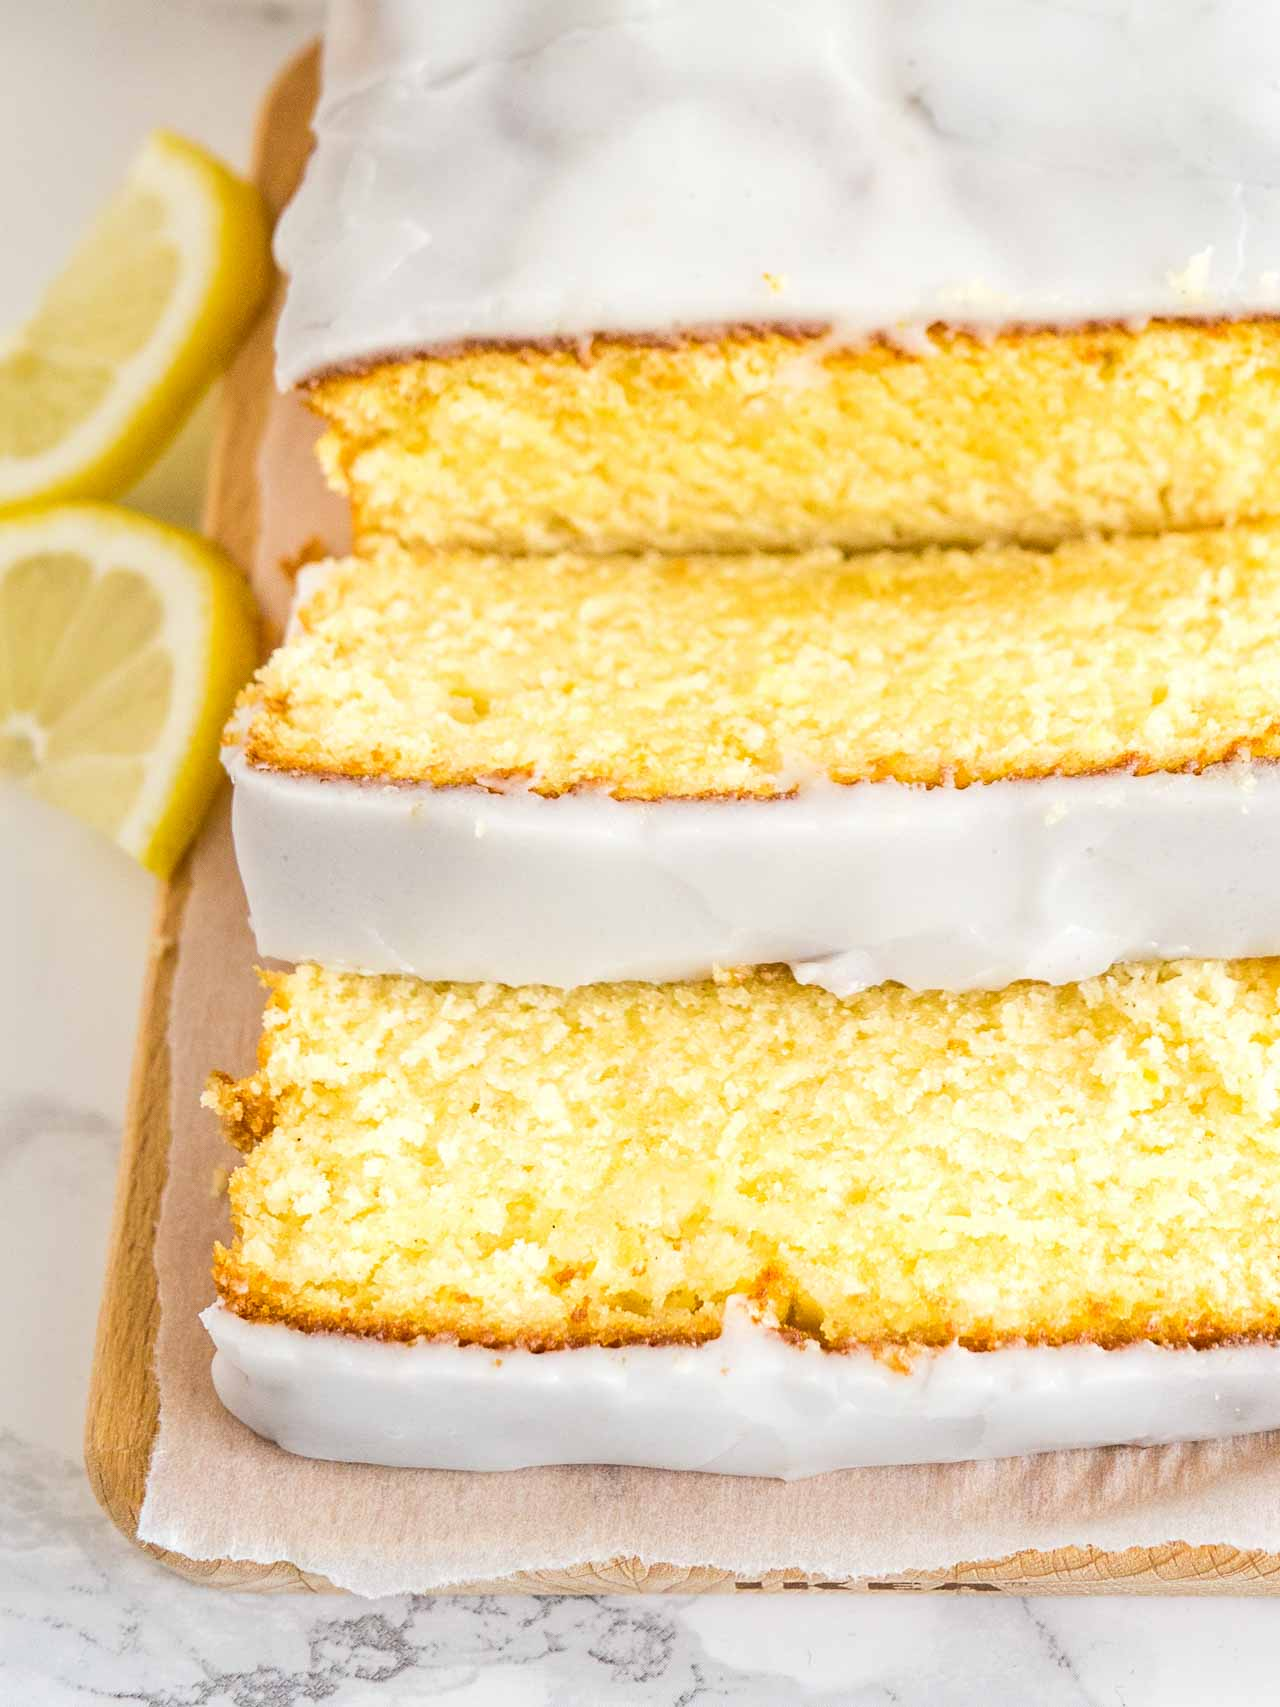 This Moist Lemon Cake Recipe Is Fluffy Tangy And So Easy To Make From Scratch